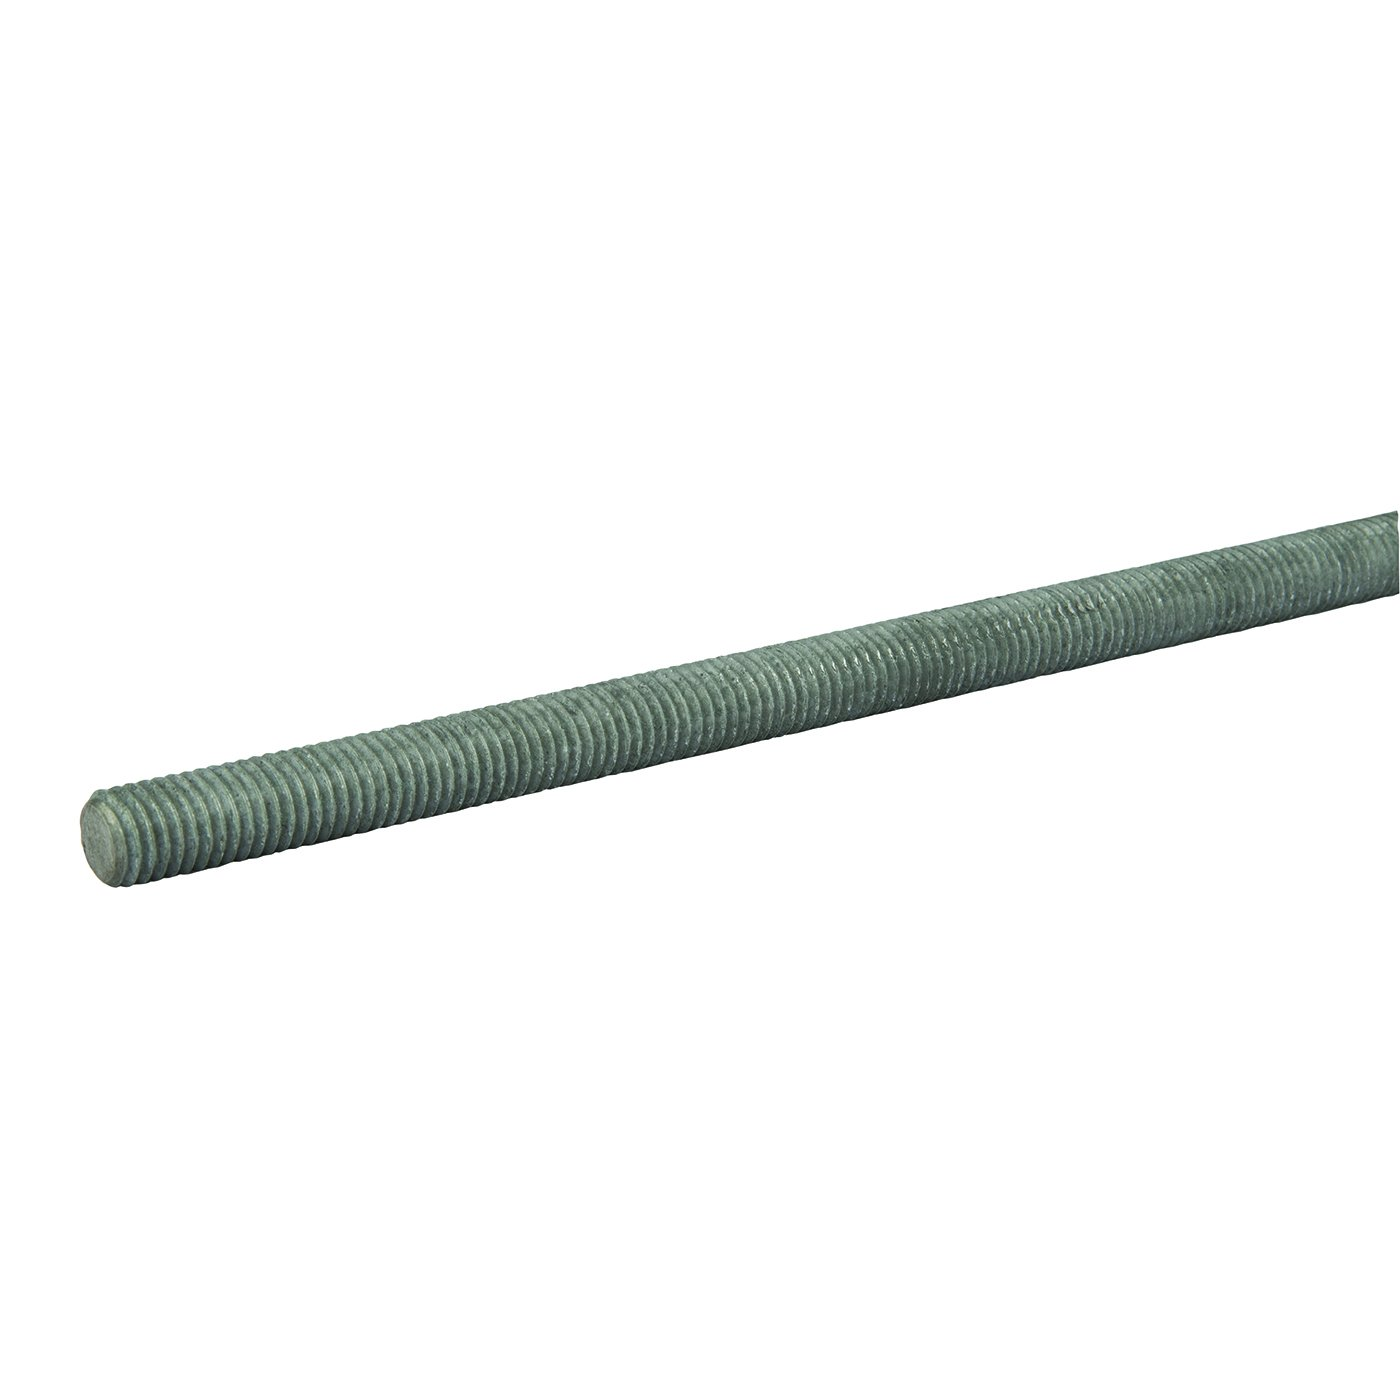 Hot-Dipped Galvanized Finish 1-1//8-7 Thread Size 3 Feet Long 1-1//8-7 Thread Size All America Threaded Products 85173 Low-Strength Steel Threaded Rod